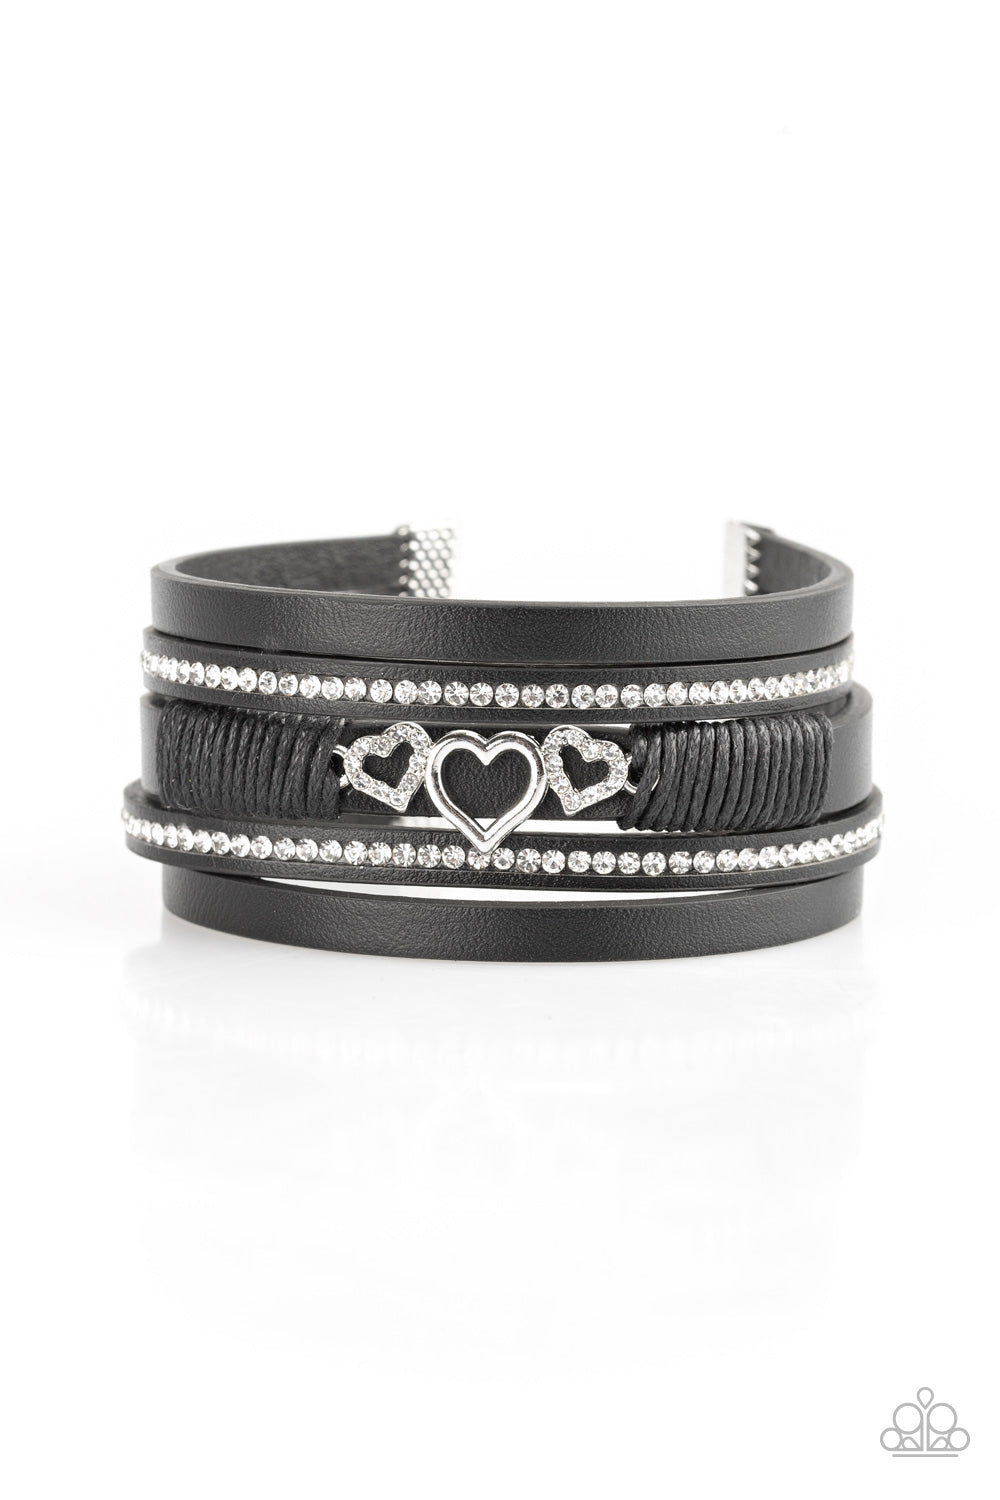 Paparazzi Accessories - Rebel Valentine - Black Bracelet - JMJ Jewelry Collection